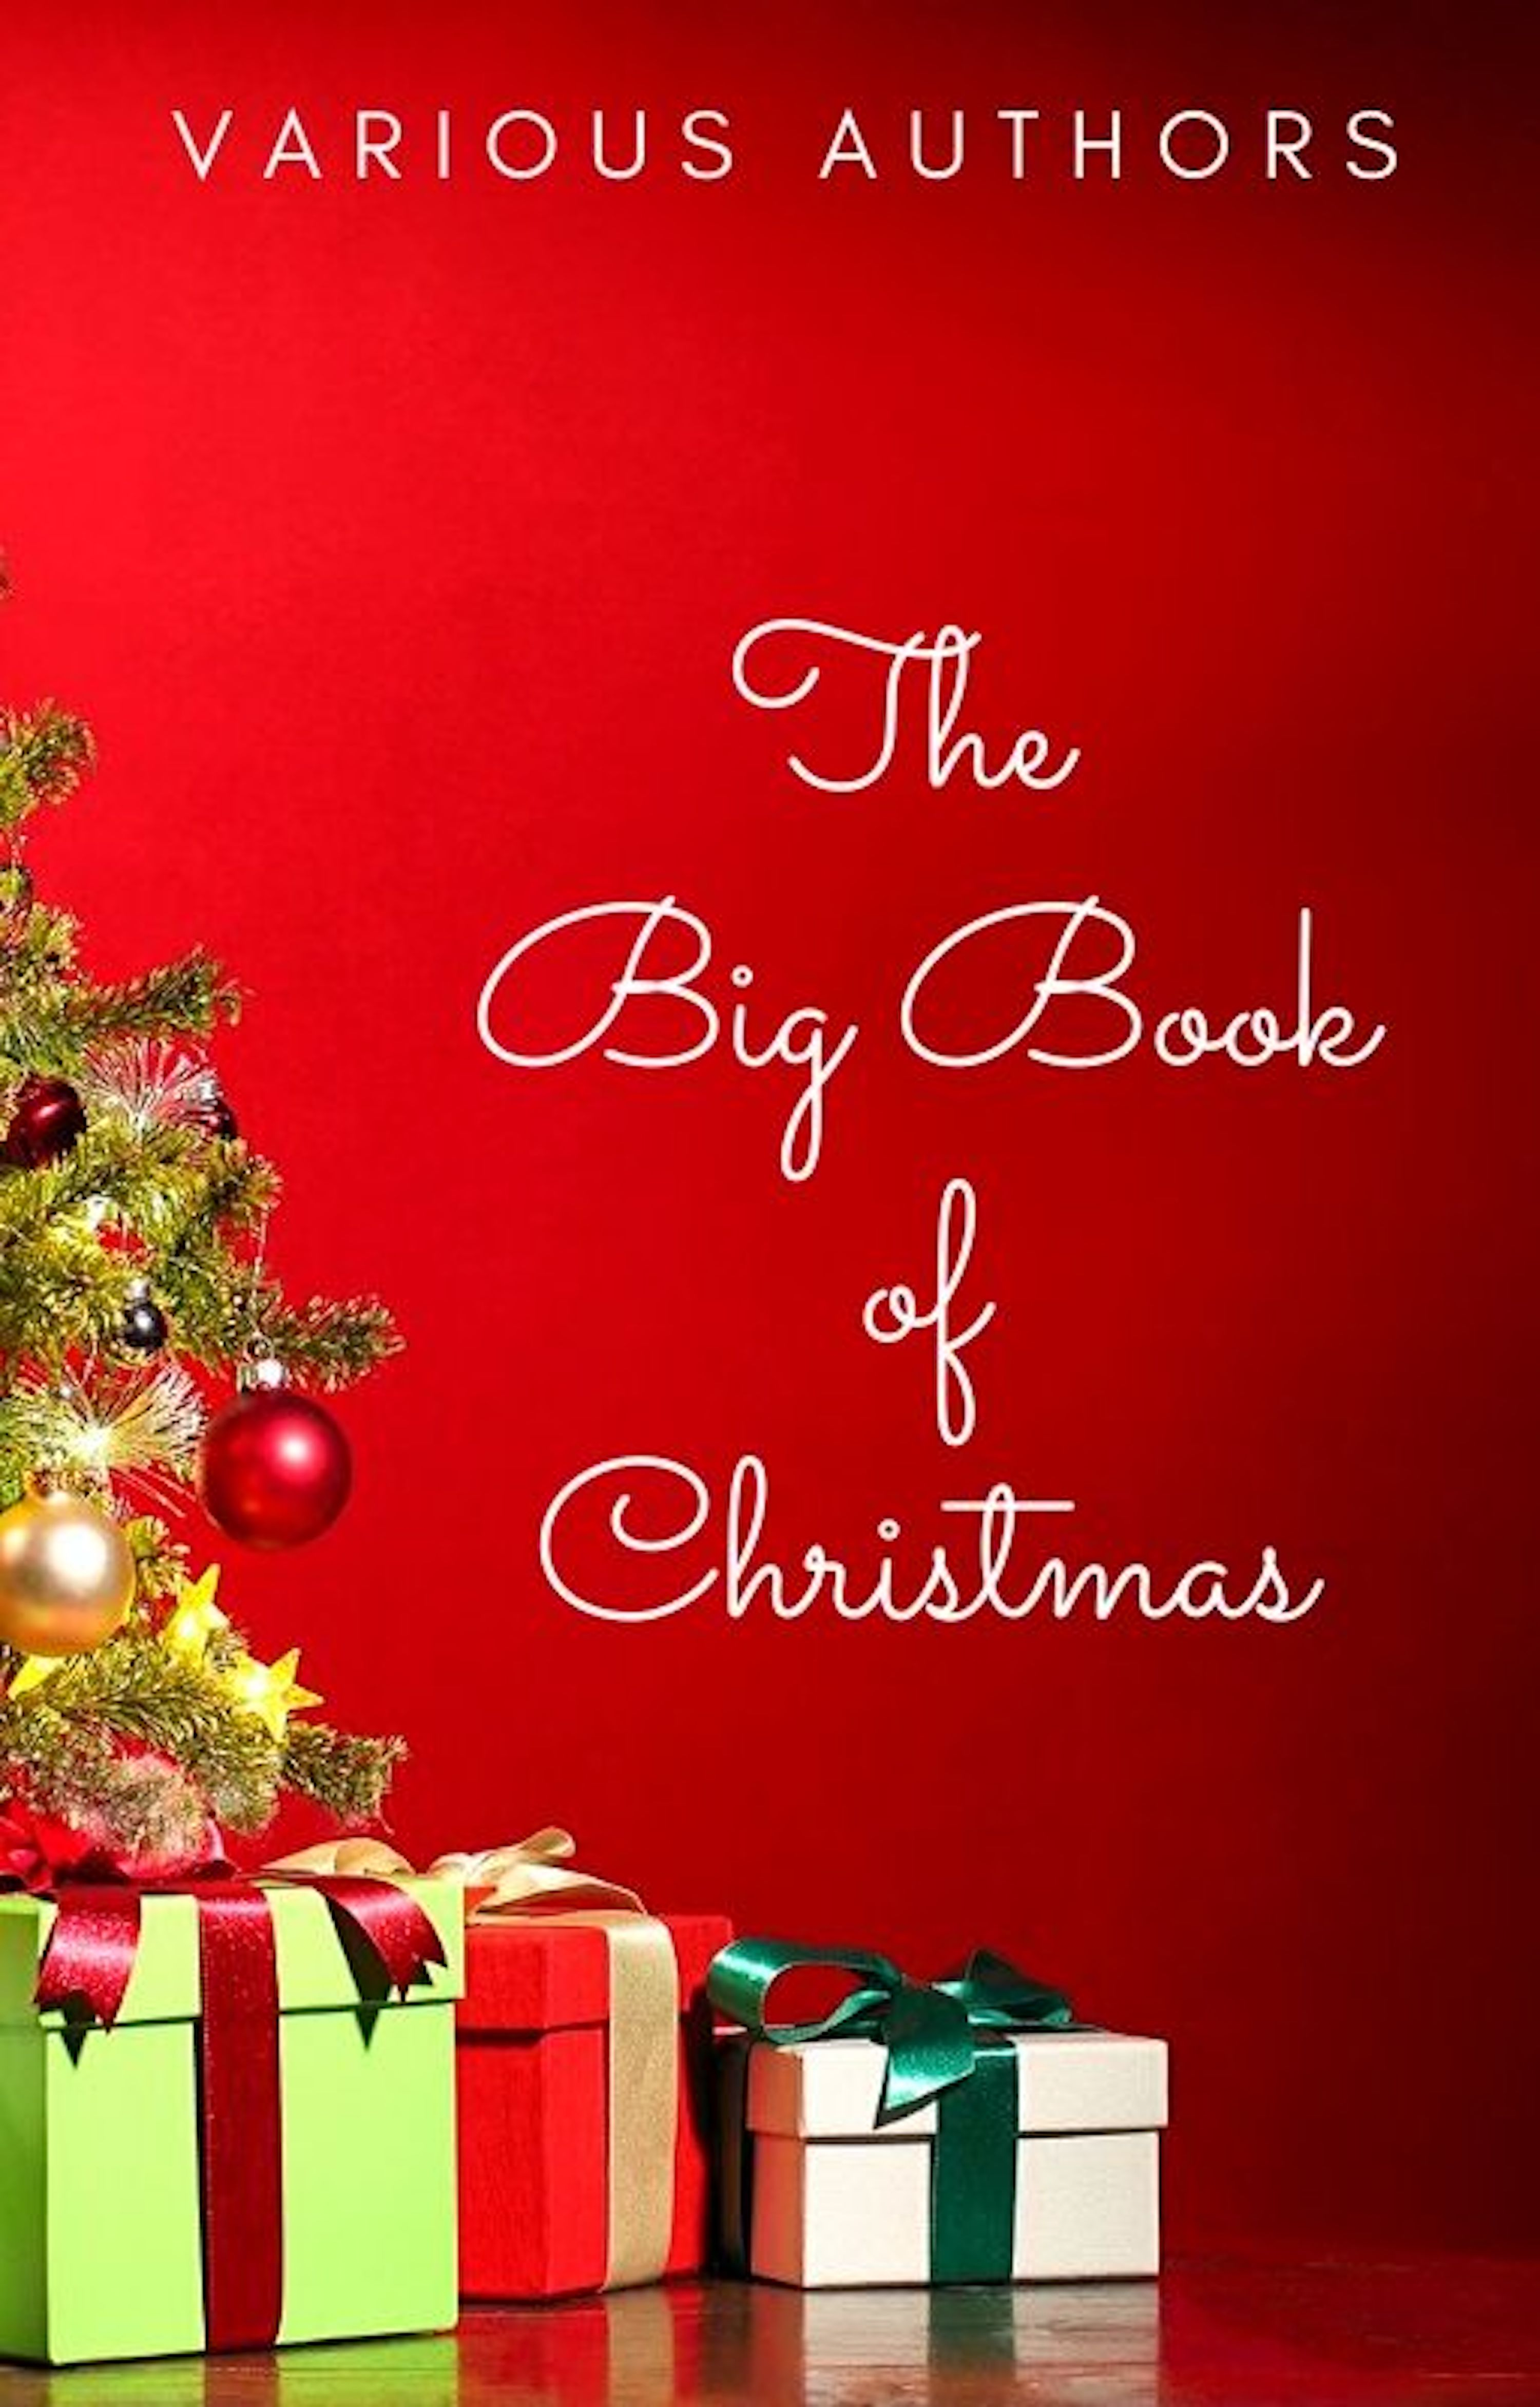 Лаймен Фрэнк Баум The Big Book of Christmas: 250+ Vintage Christmas Stories, Carols, Novellas, Poems by 120+ Authors отсутствует christmas carols and hymns of all time